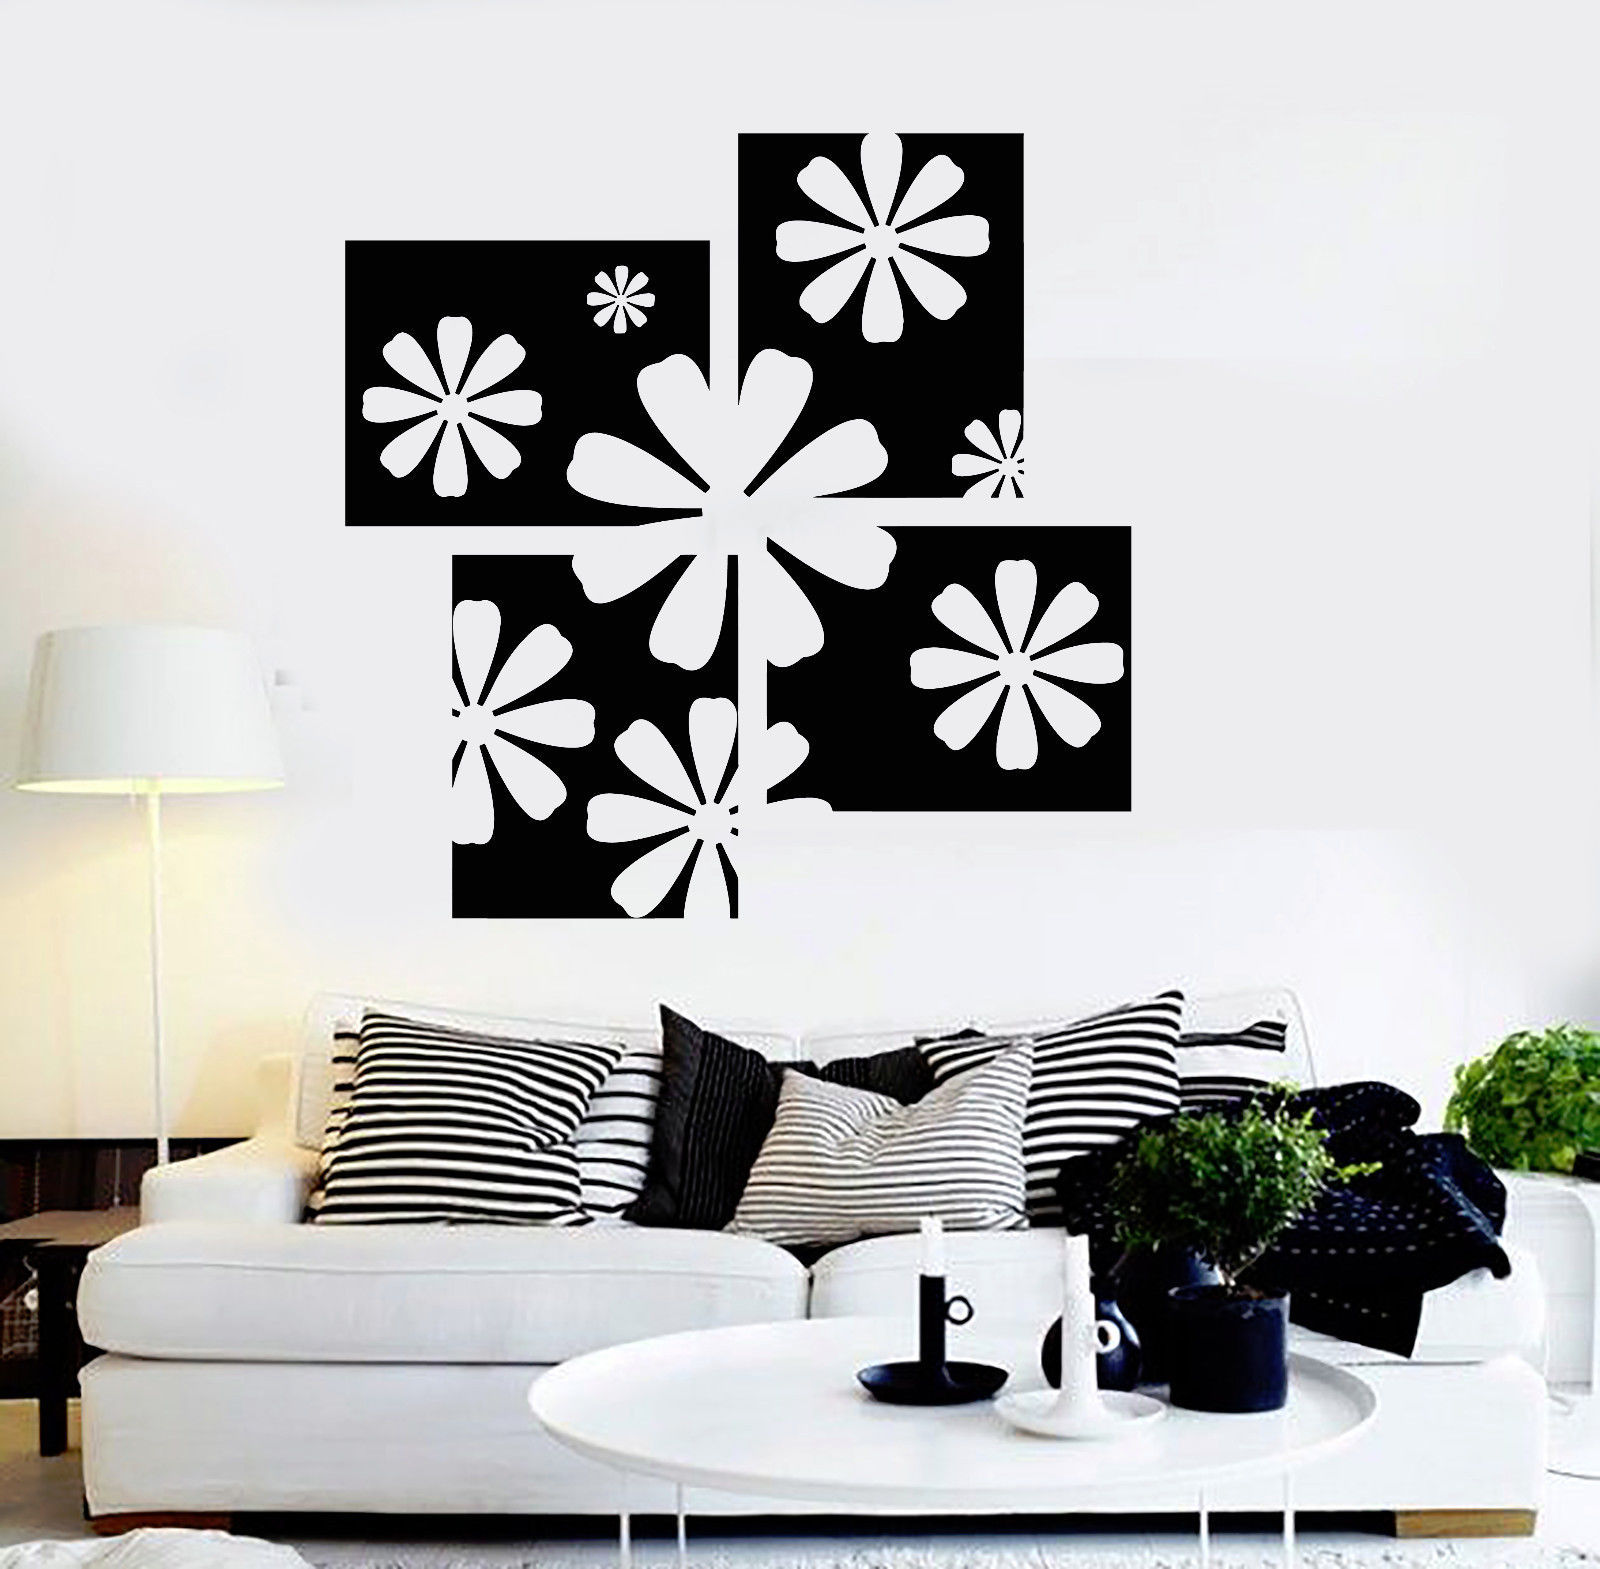 Vinyl wall decal floral art room flower house interior for Interieur stickers